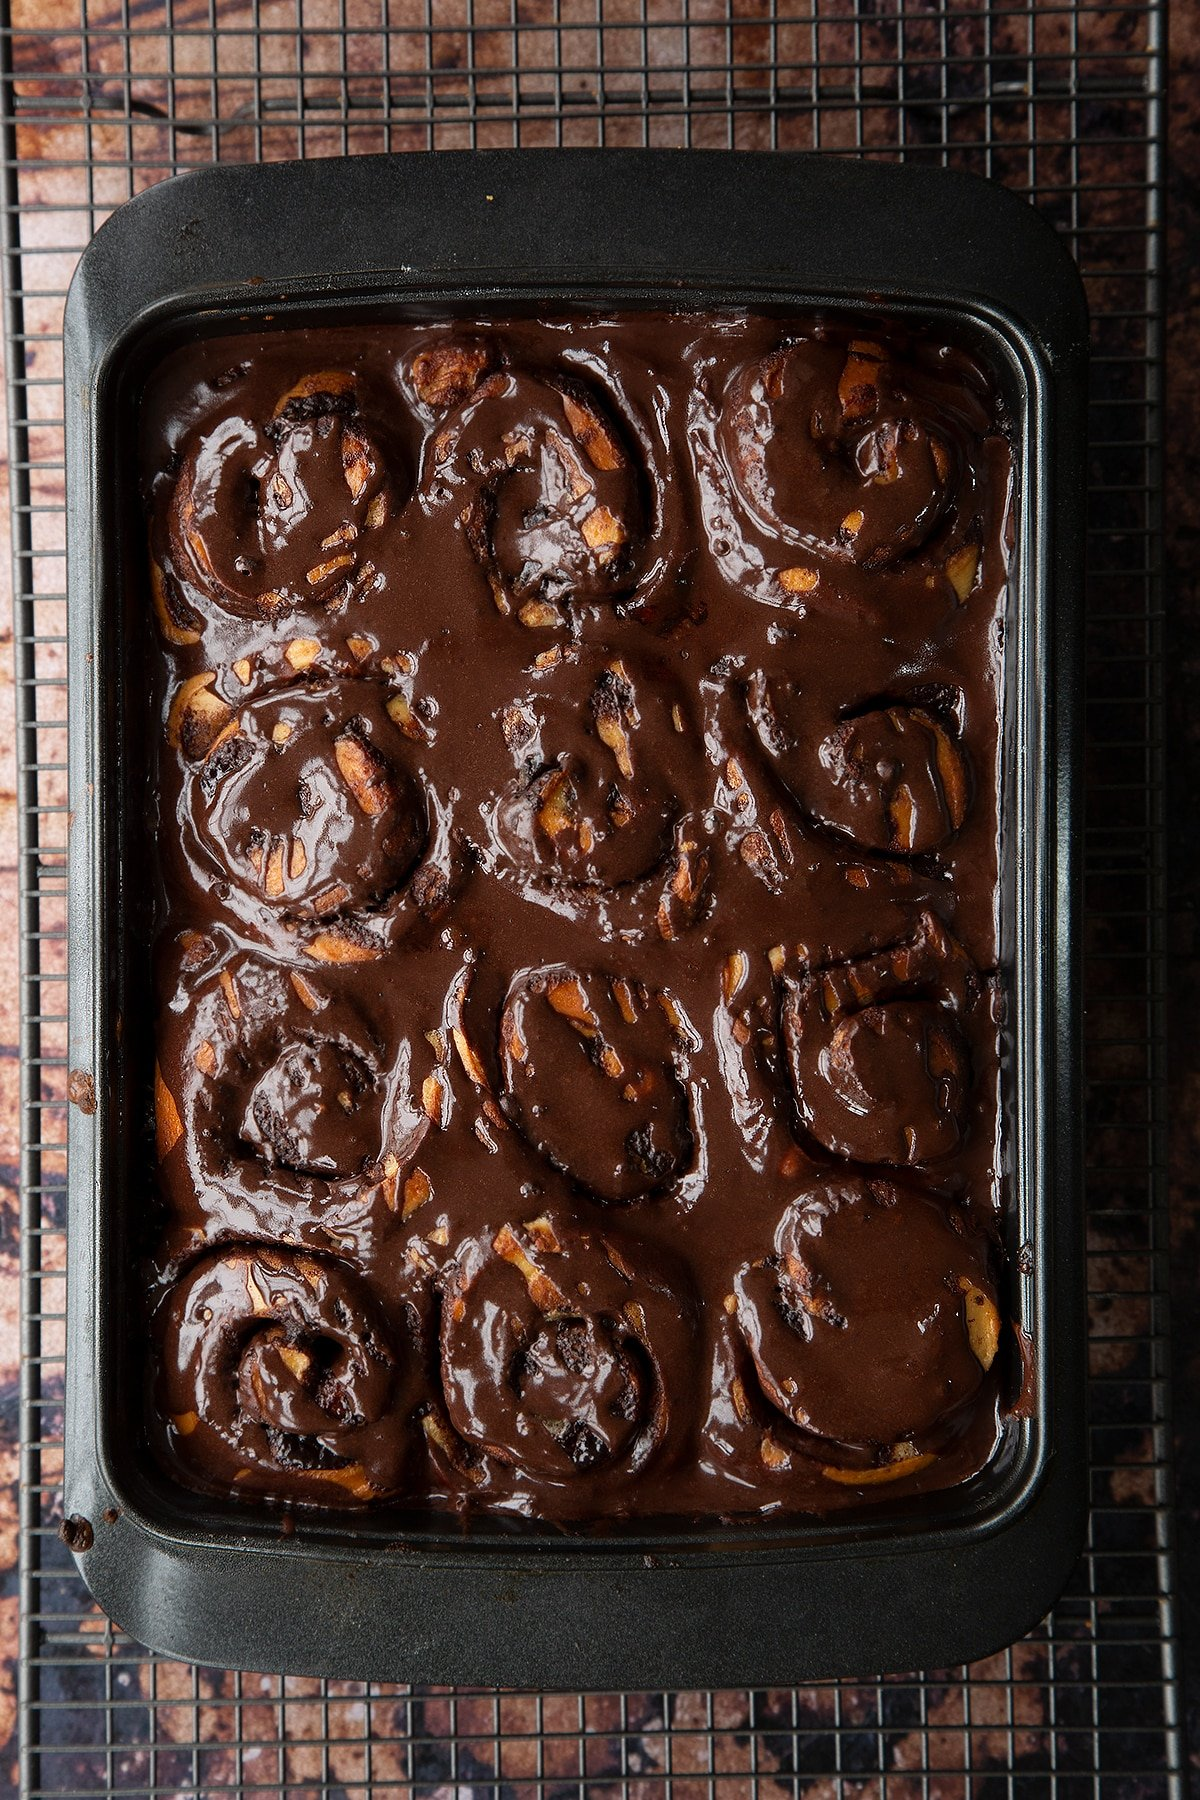 Overhead shot of chocolate cinnamon buns baked in a baking tray covered in chocolate sauce